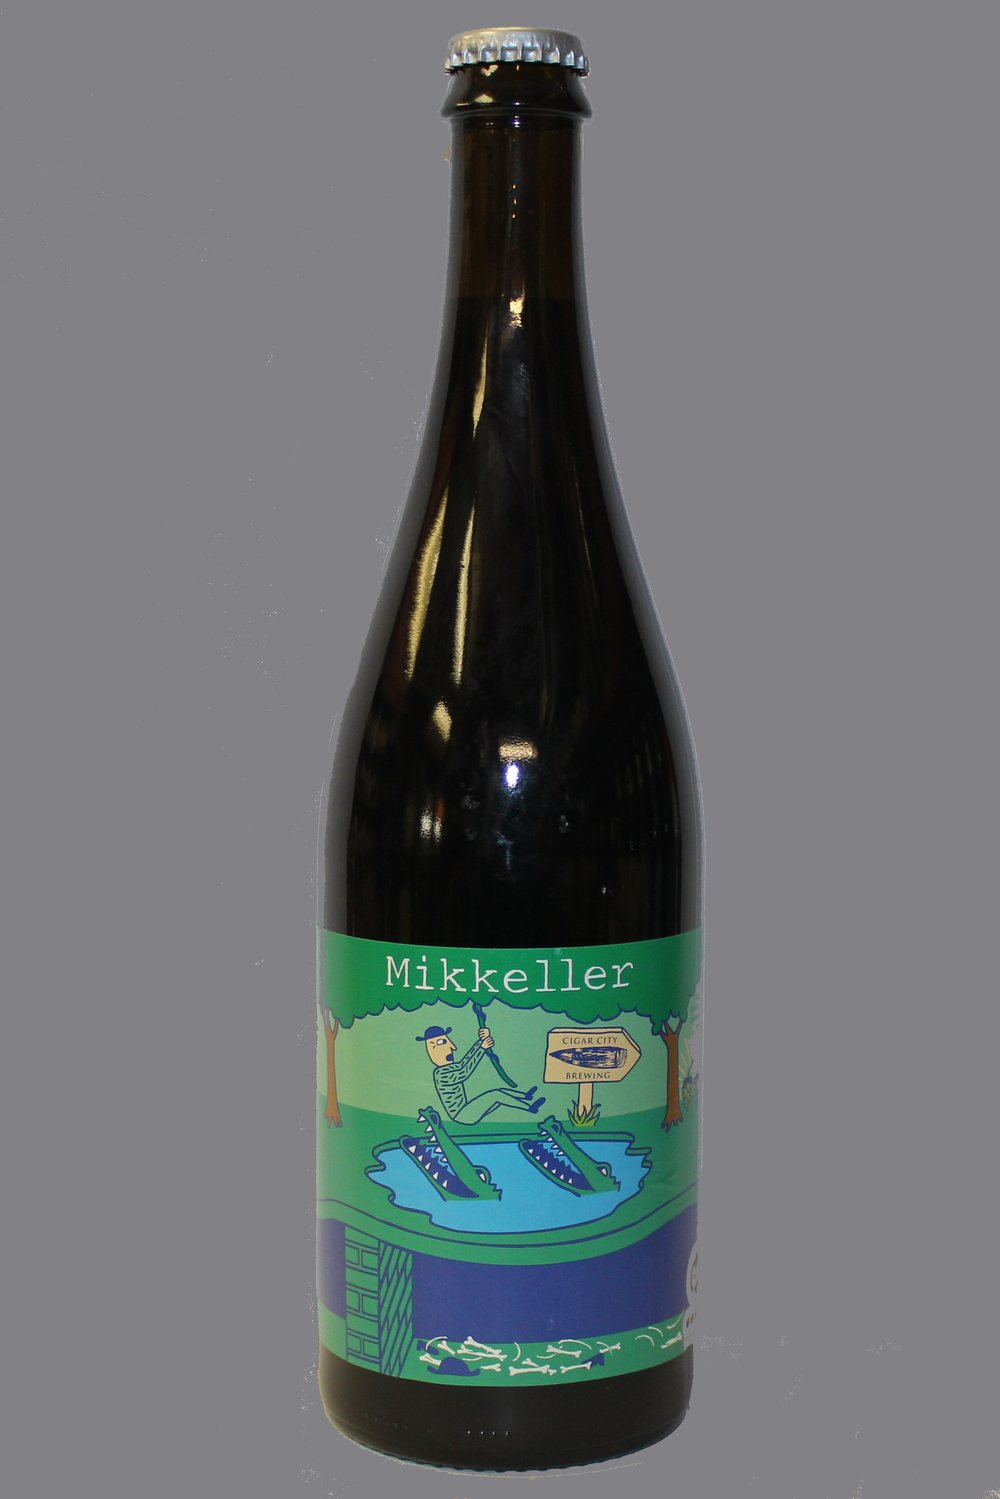 MIKKELLER-Ciga city Swinging Harry Tropical Quad.jpg